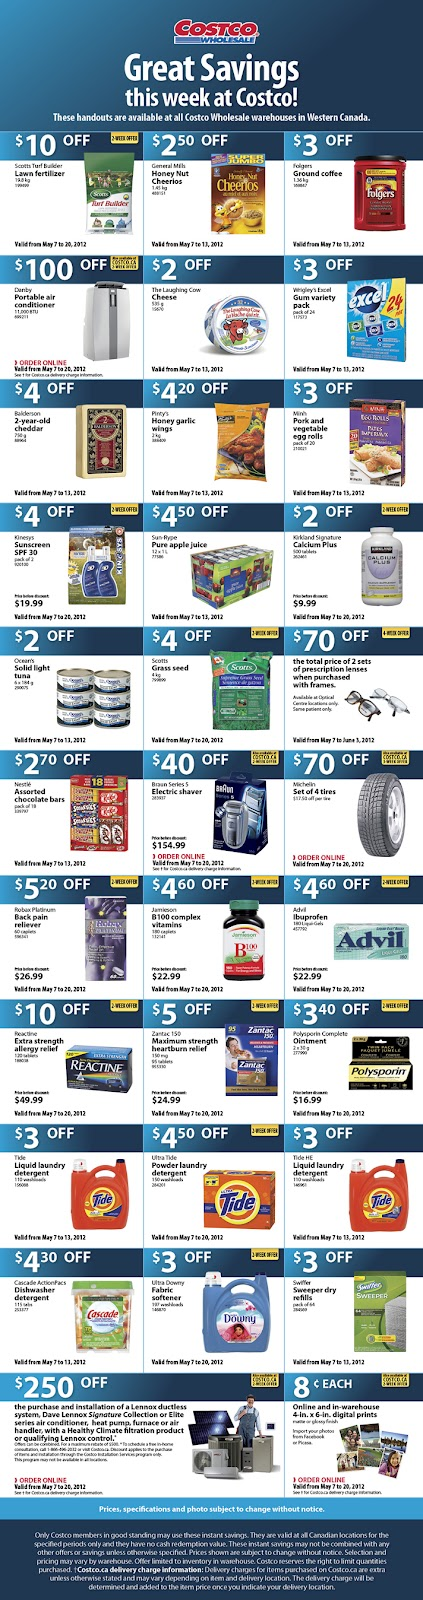 Costco coupons weekly